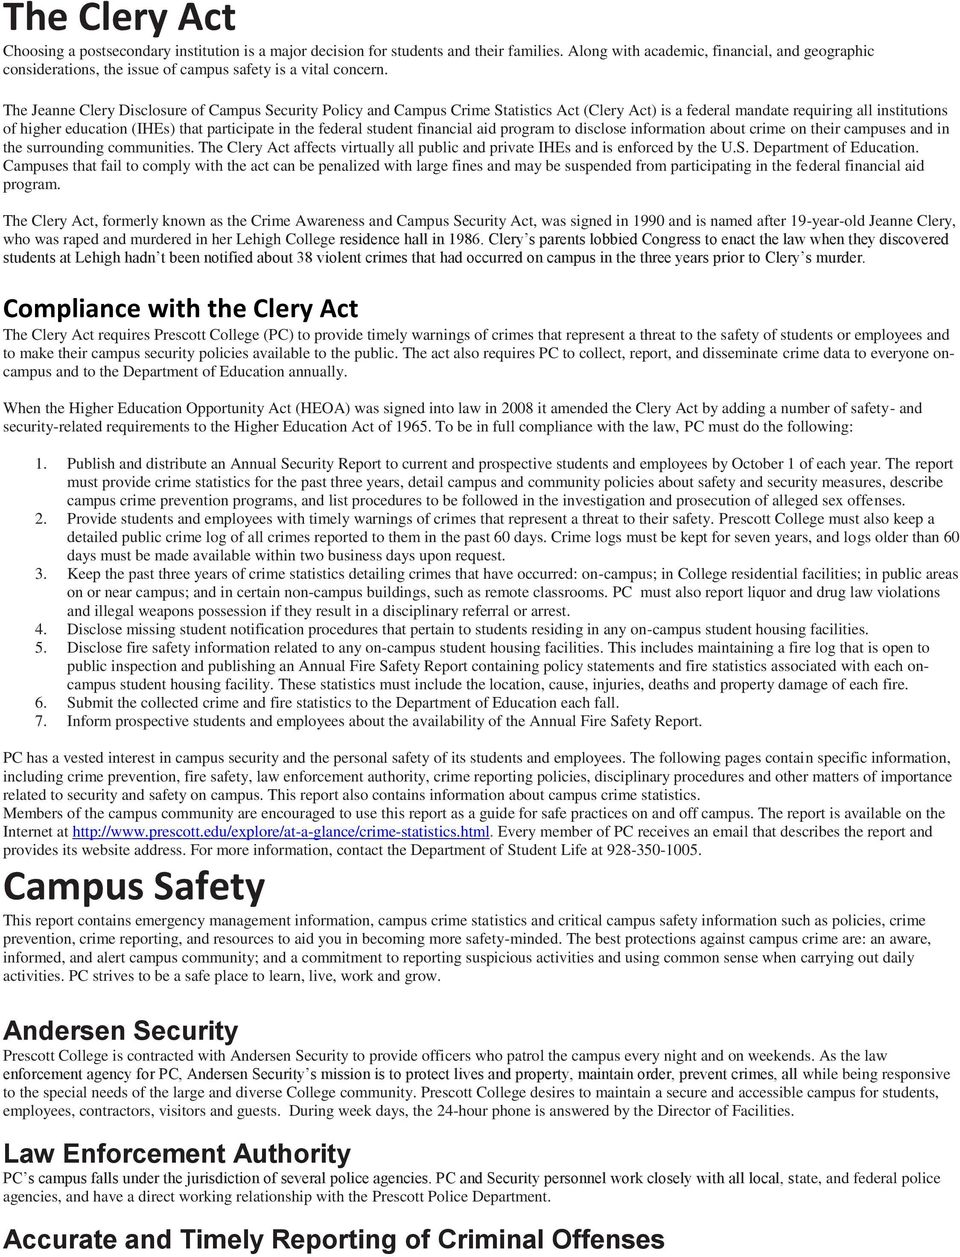 The Jeanne Clery Disclosure of Campus Security Policy and Campus Crime Statistics Act (Clery Act) is a federal mandate requiring all institutions of higher education (IHEs) that participate in the